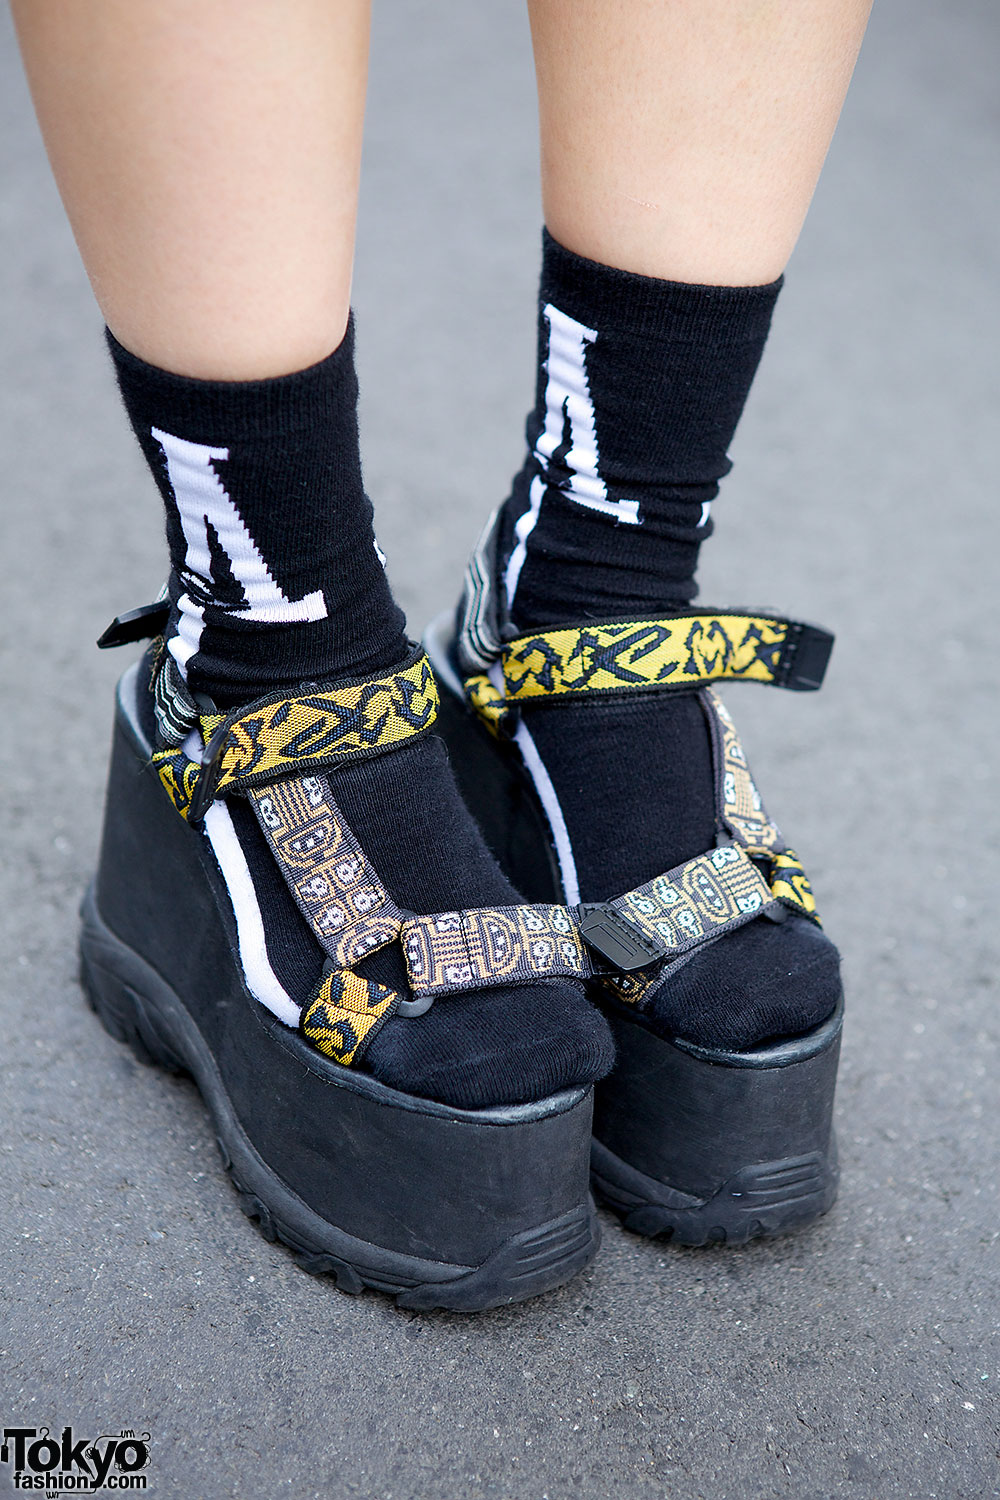 Japanese Street Fashion Trends - Summer 2013